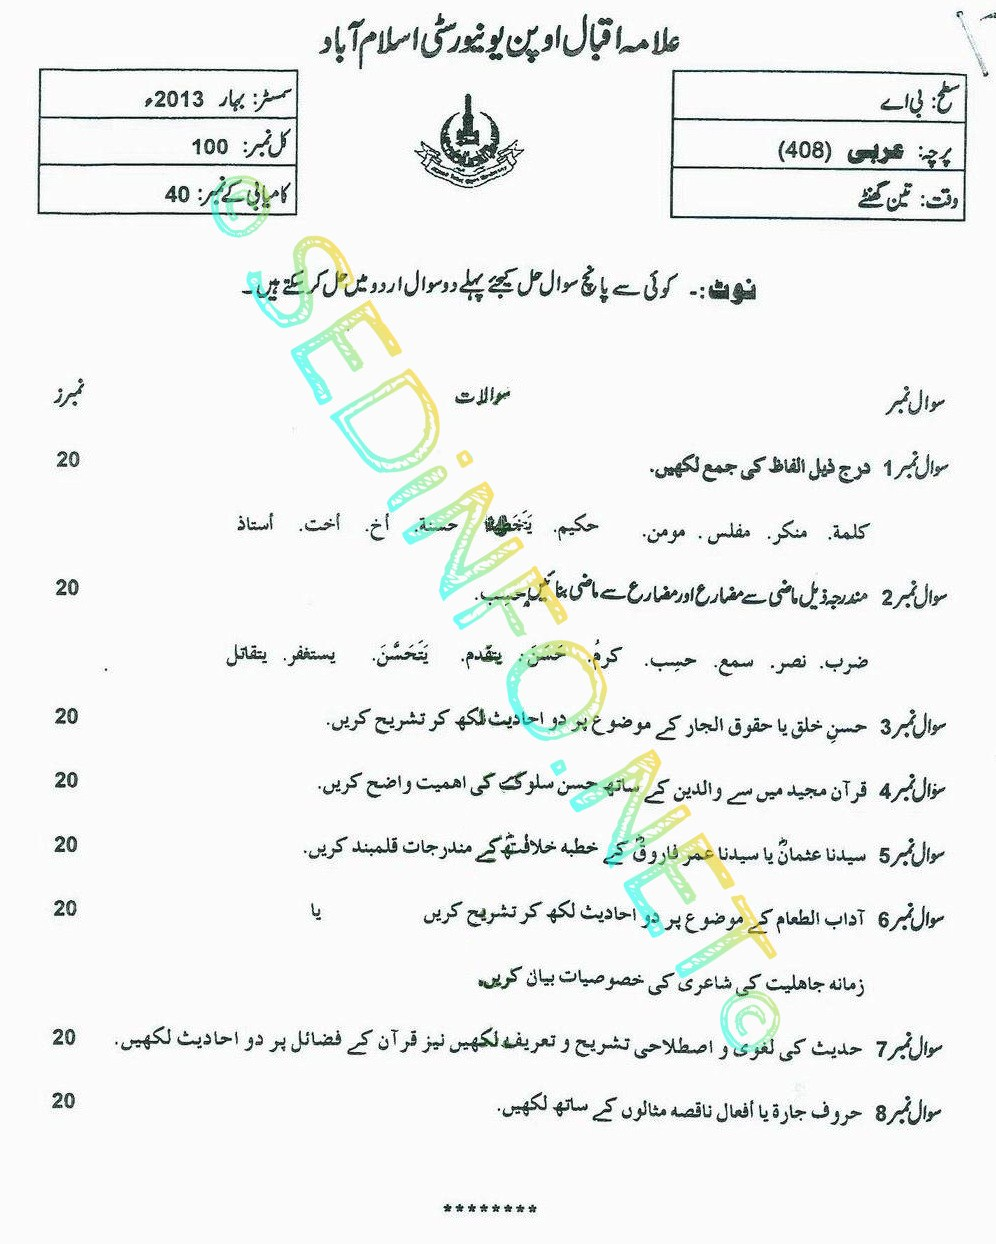 AIOU BA Past Papers Code 408 Spring 2013